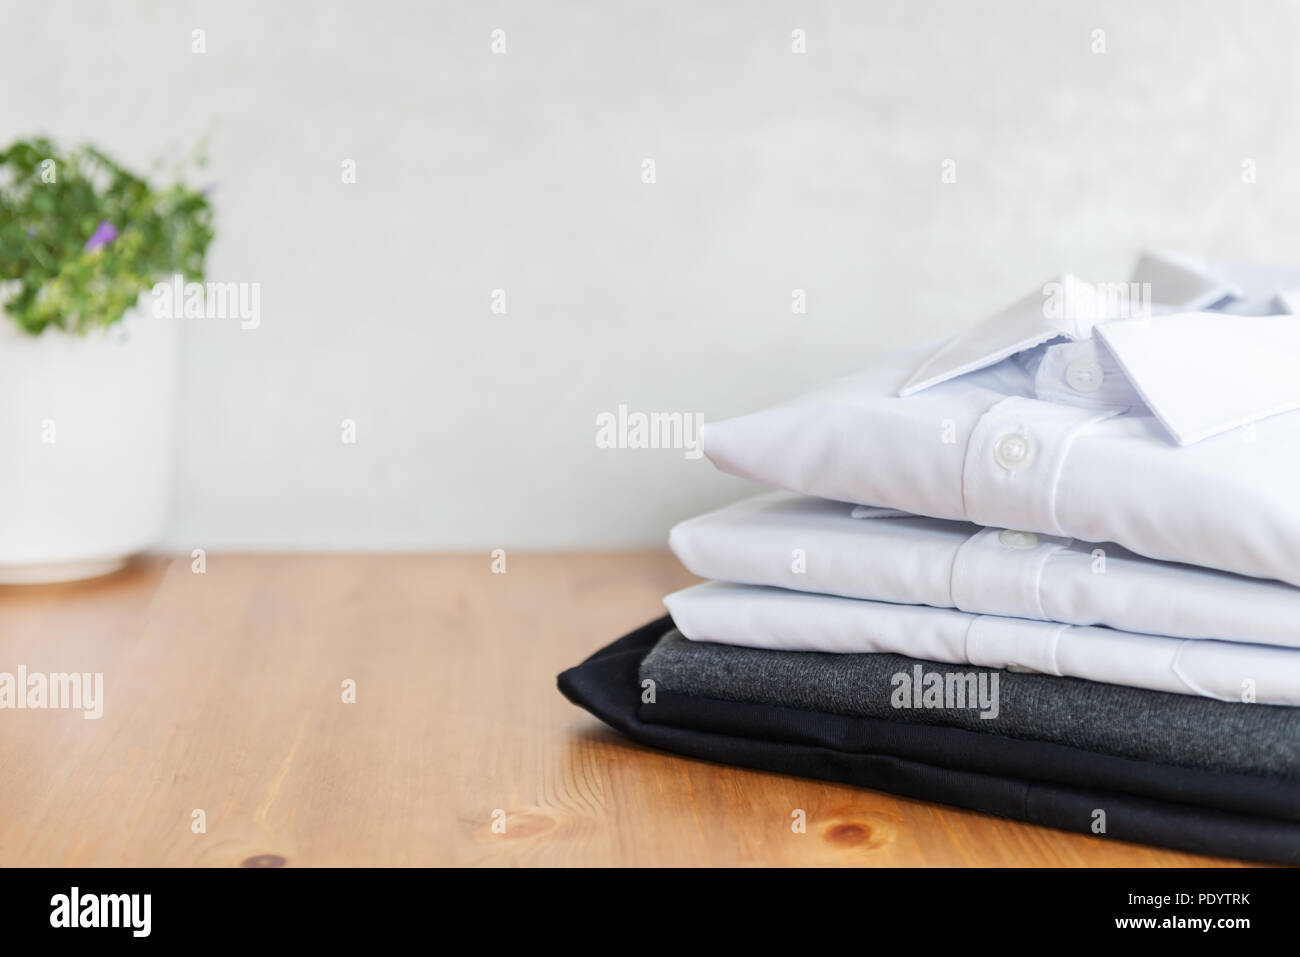 Back to school concept, school uniform such as white shirts, sweater and trousers on the light background - Stock Image